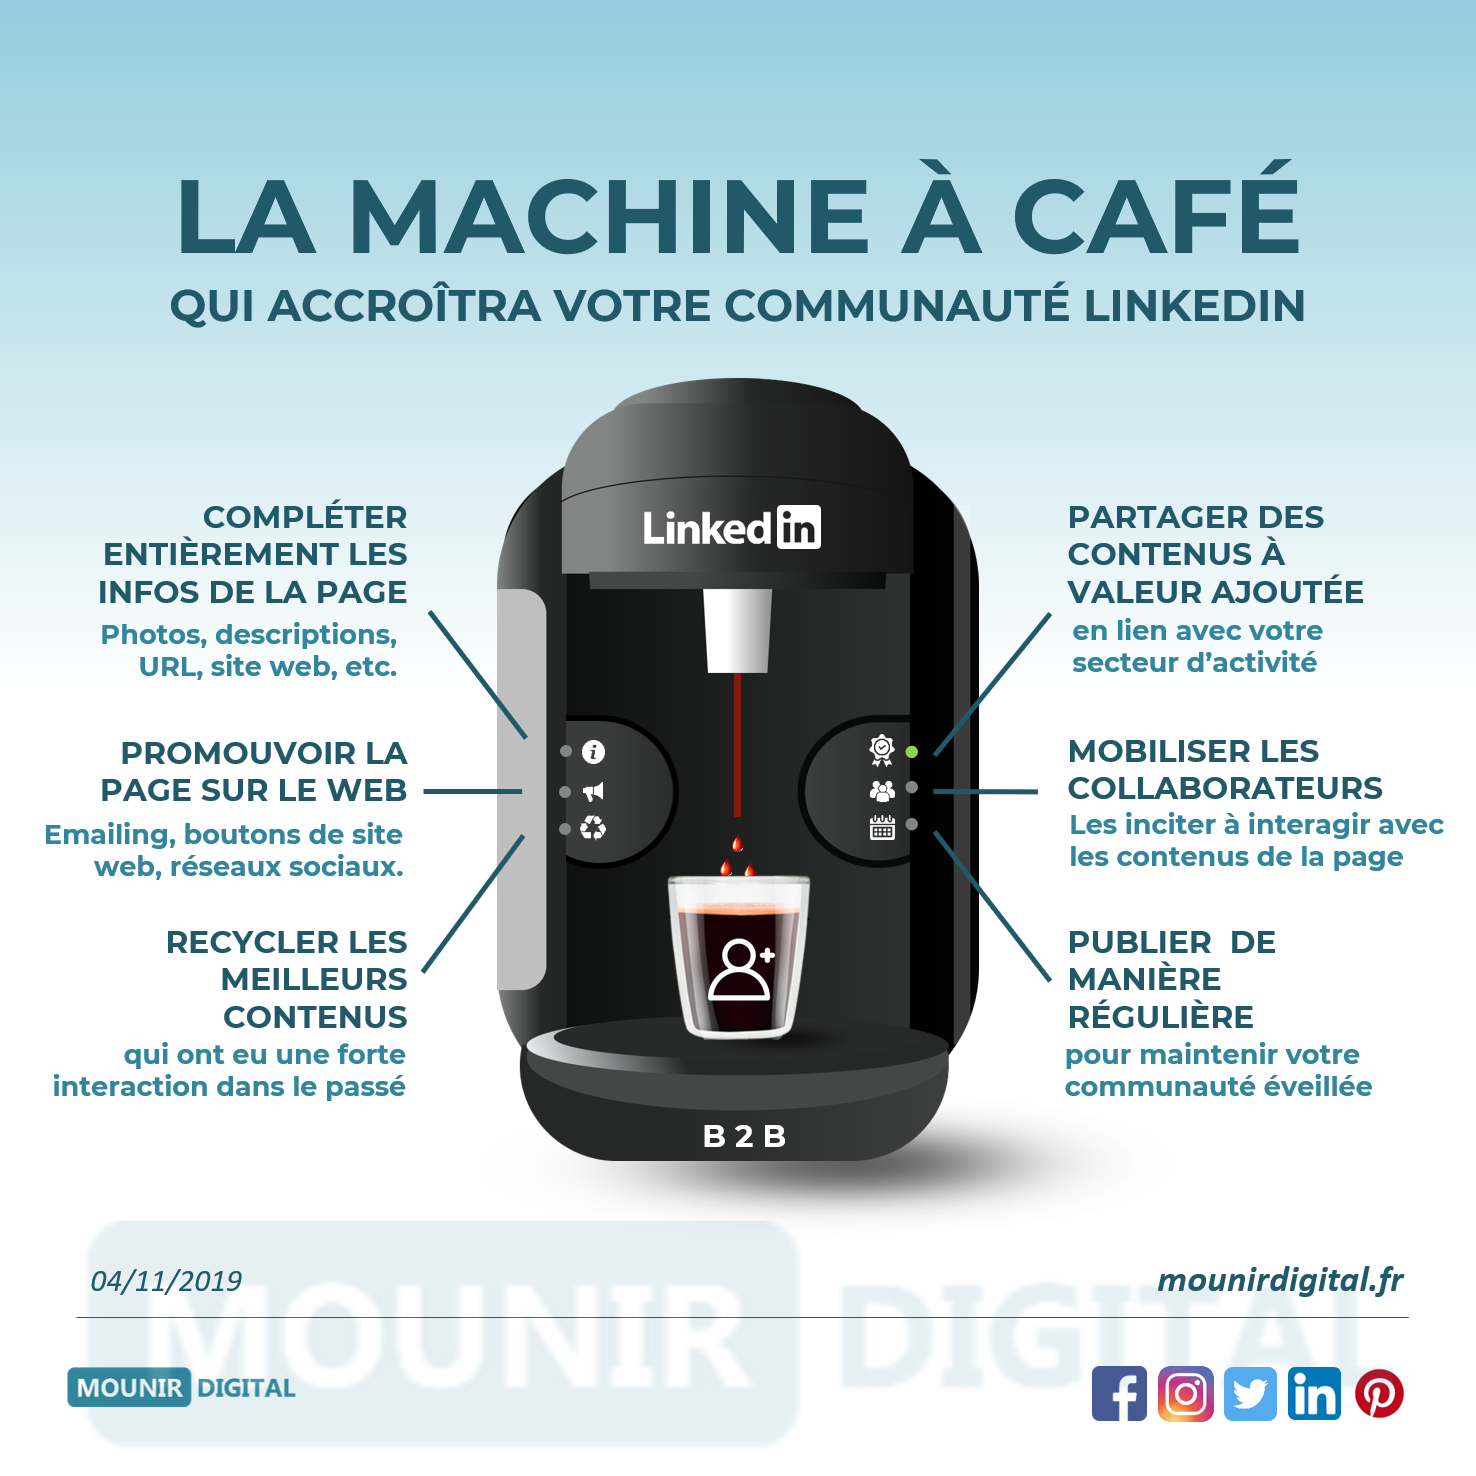 Mounir Digital 126 - La machine à café qui accroitra votre communauté LinkedIn